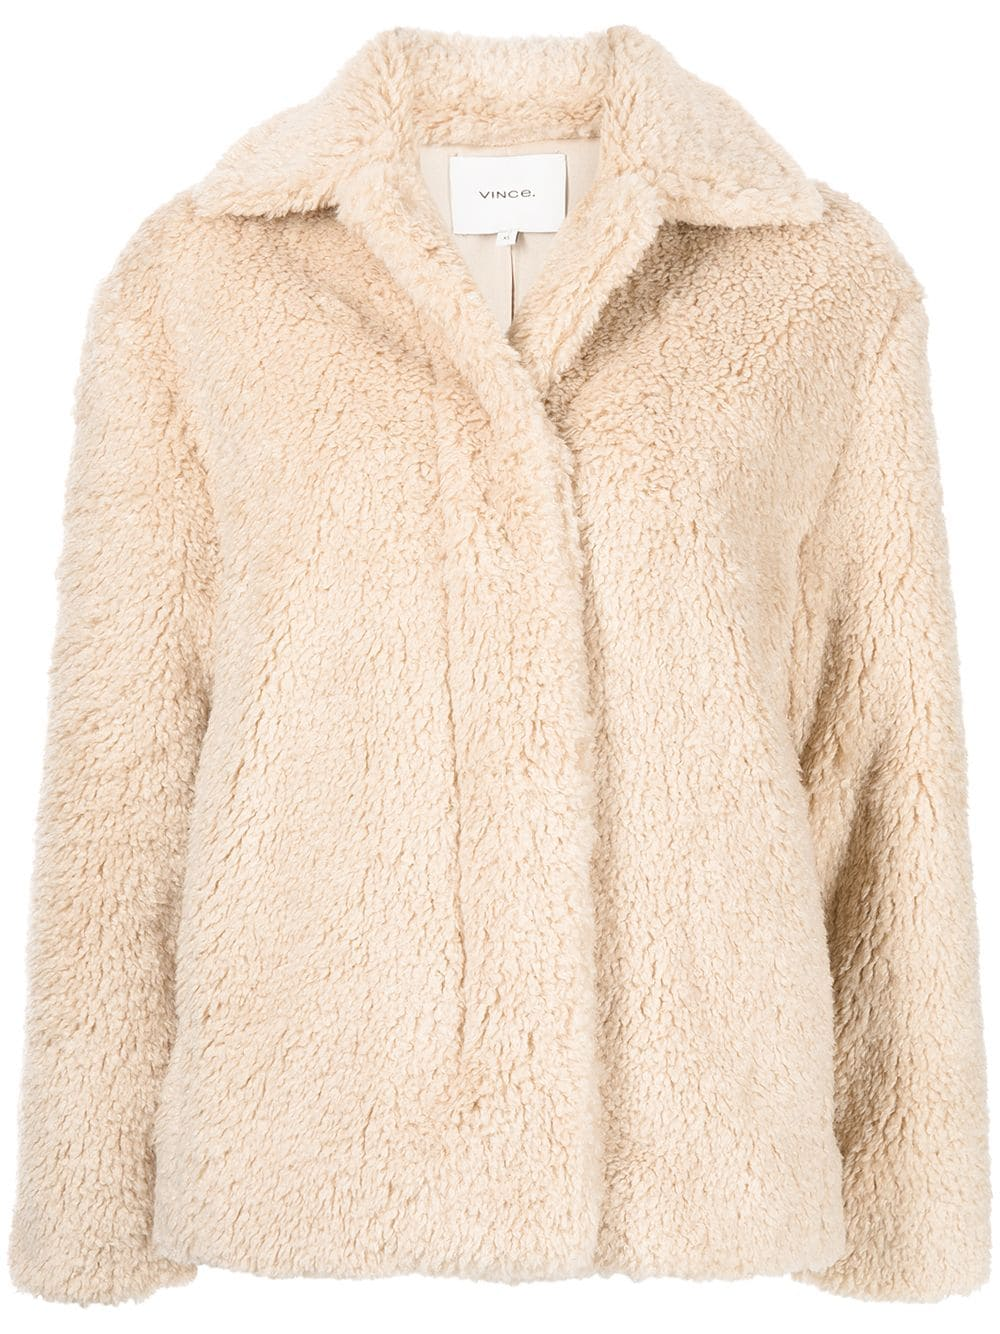 Picture of Vince | Single-Breasted Faux Shearling Jacket